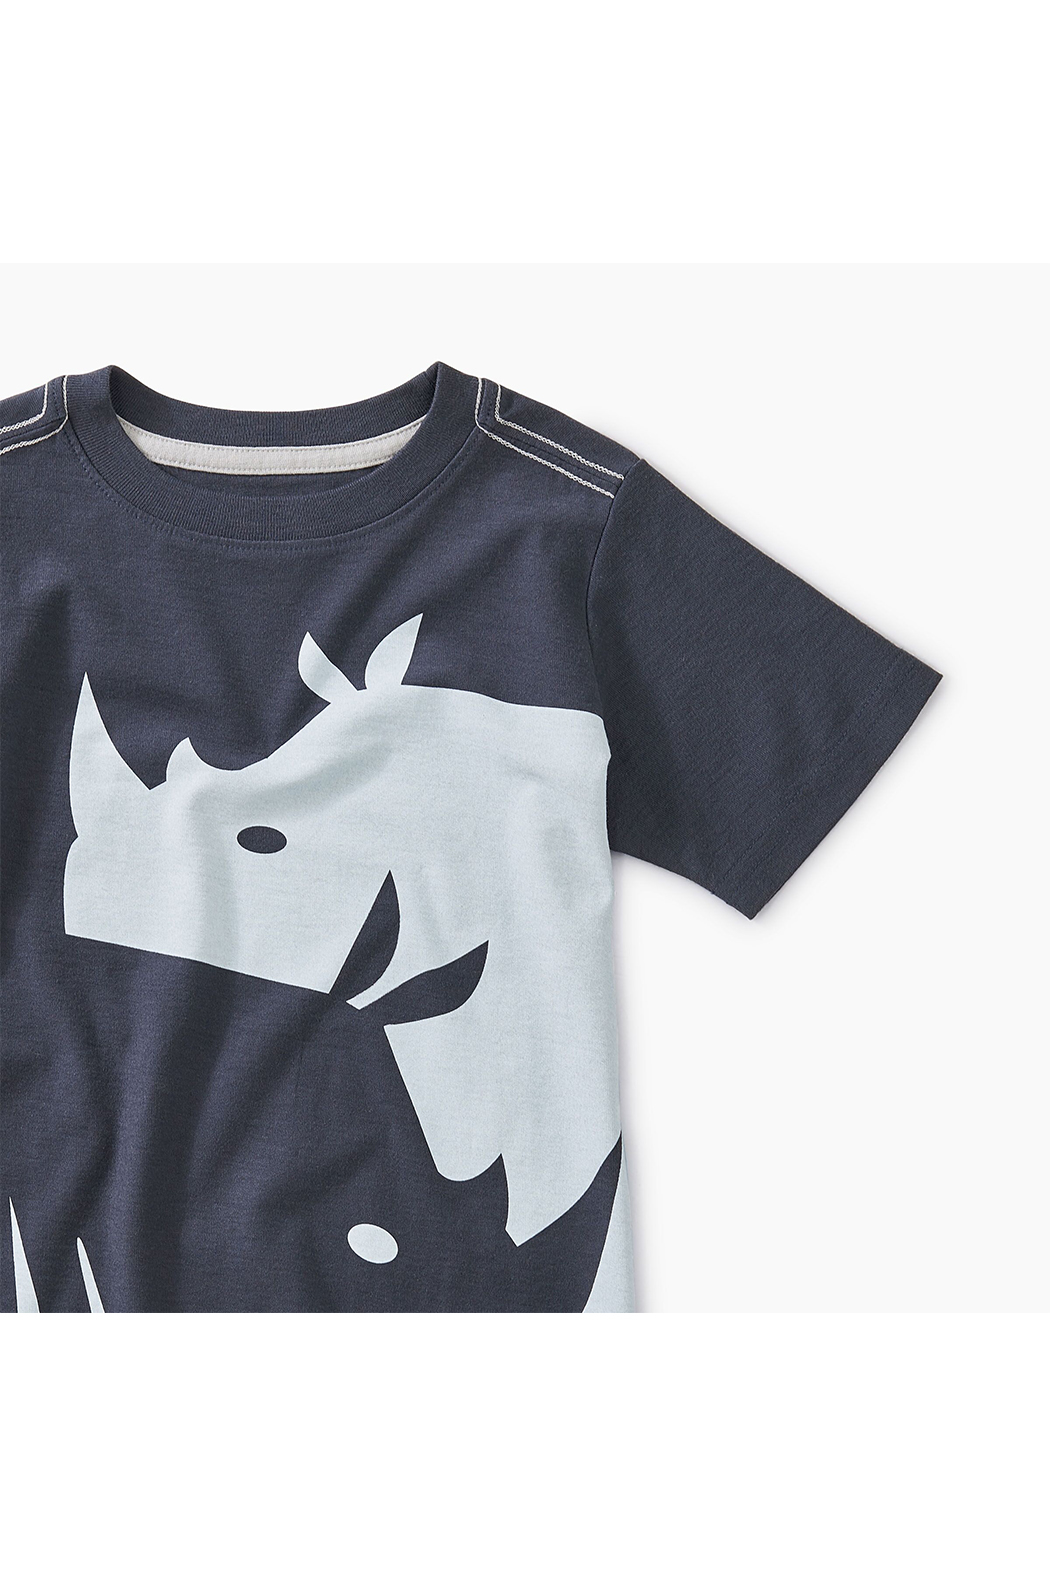 Tea Collection Ying Yang Rhino Graphic Tee - Front Full Image